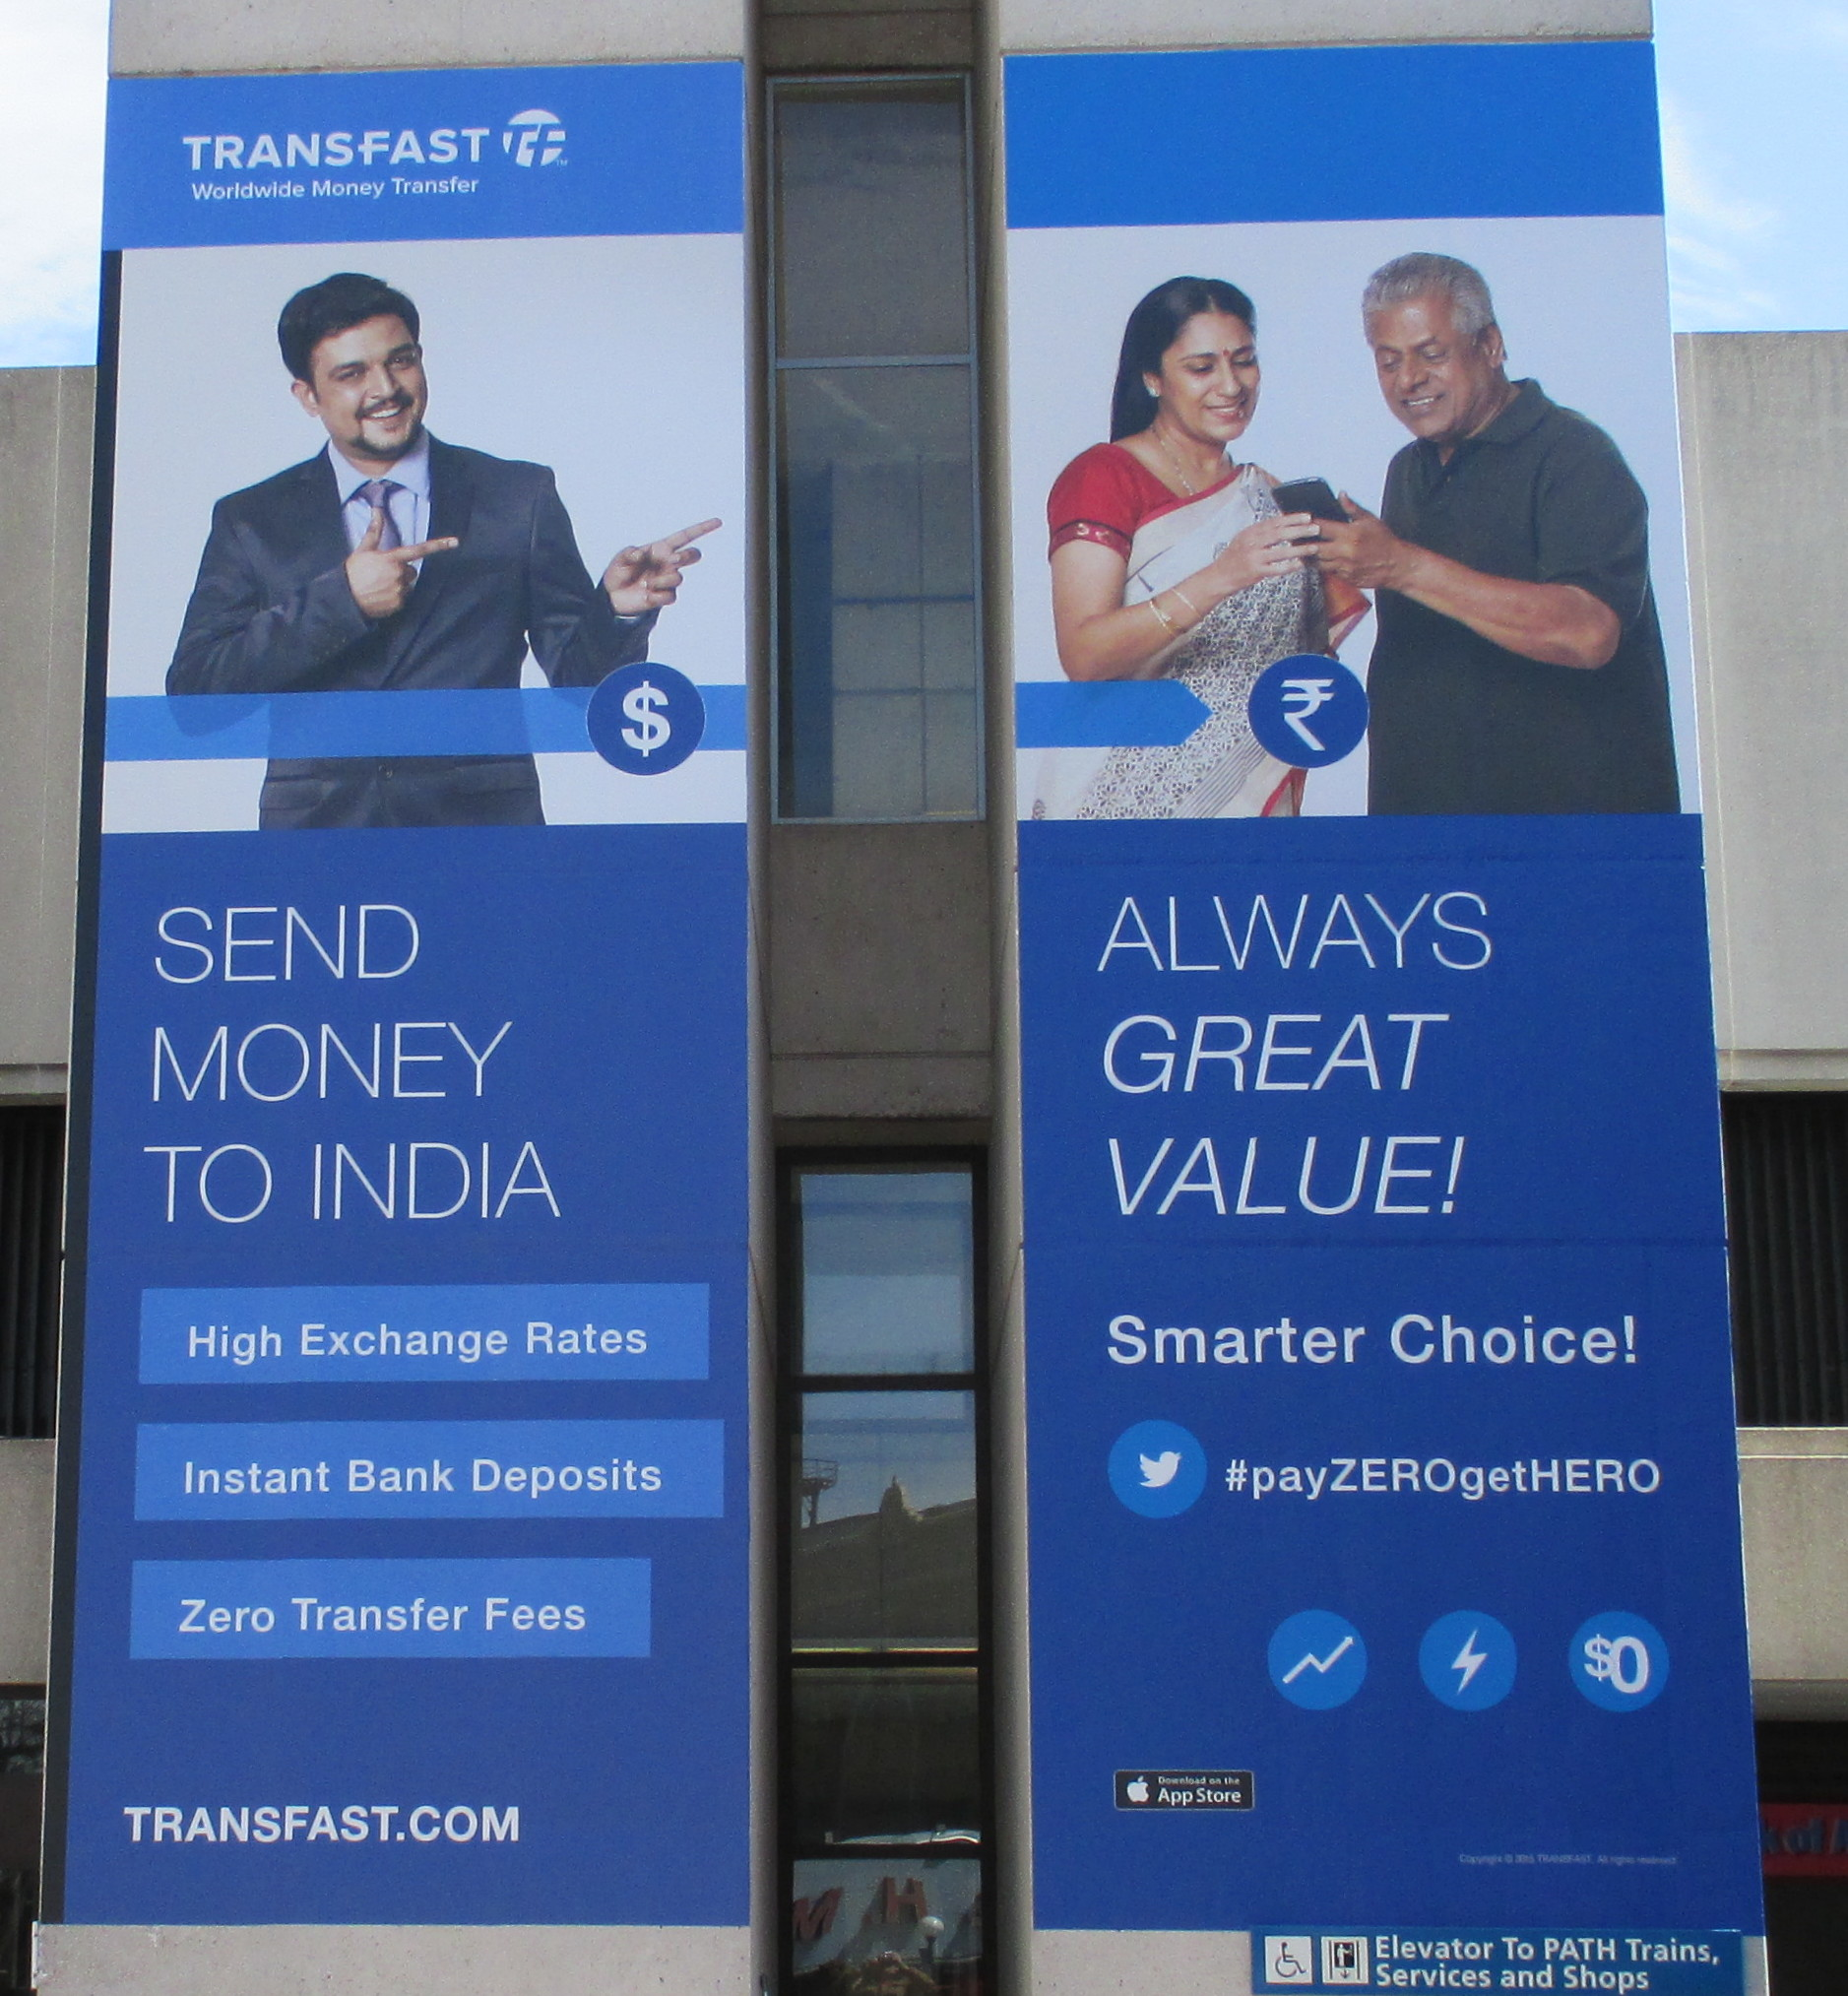 Transfast Money Transfer Review And Tips Wire Nigeria Ads In New Jersey For Sending From Usa To India April